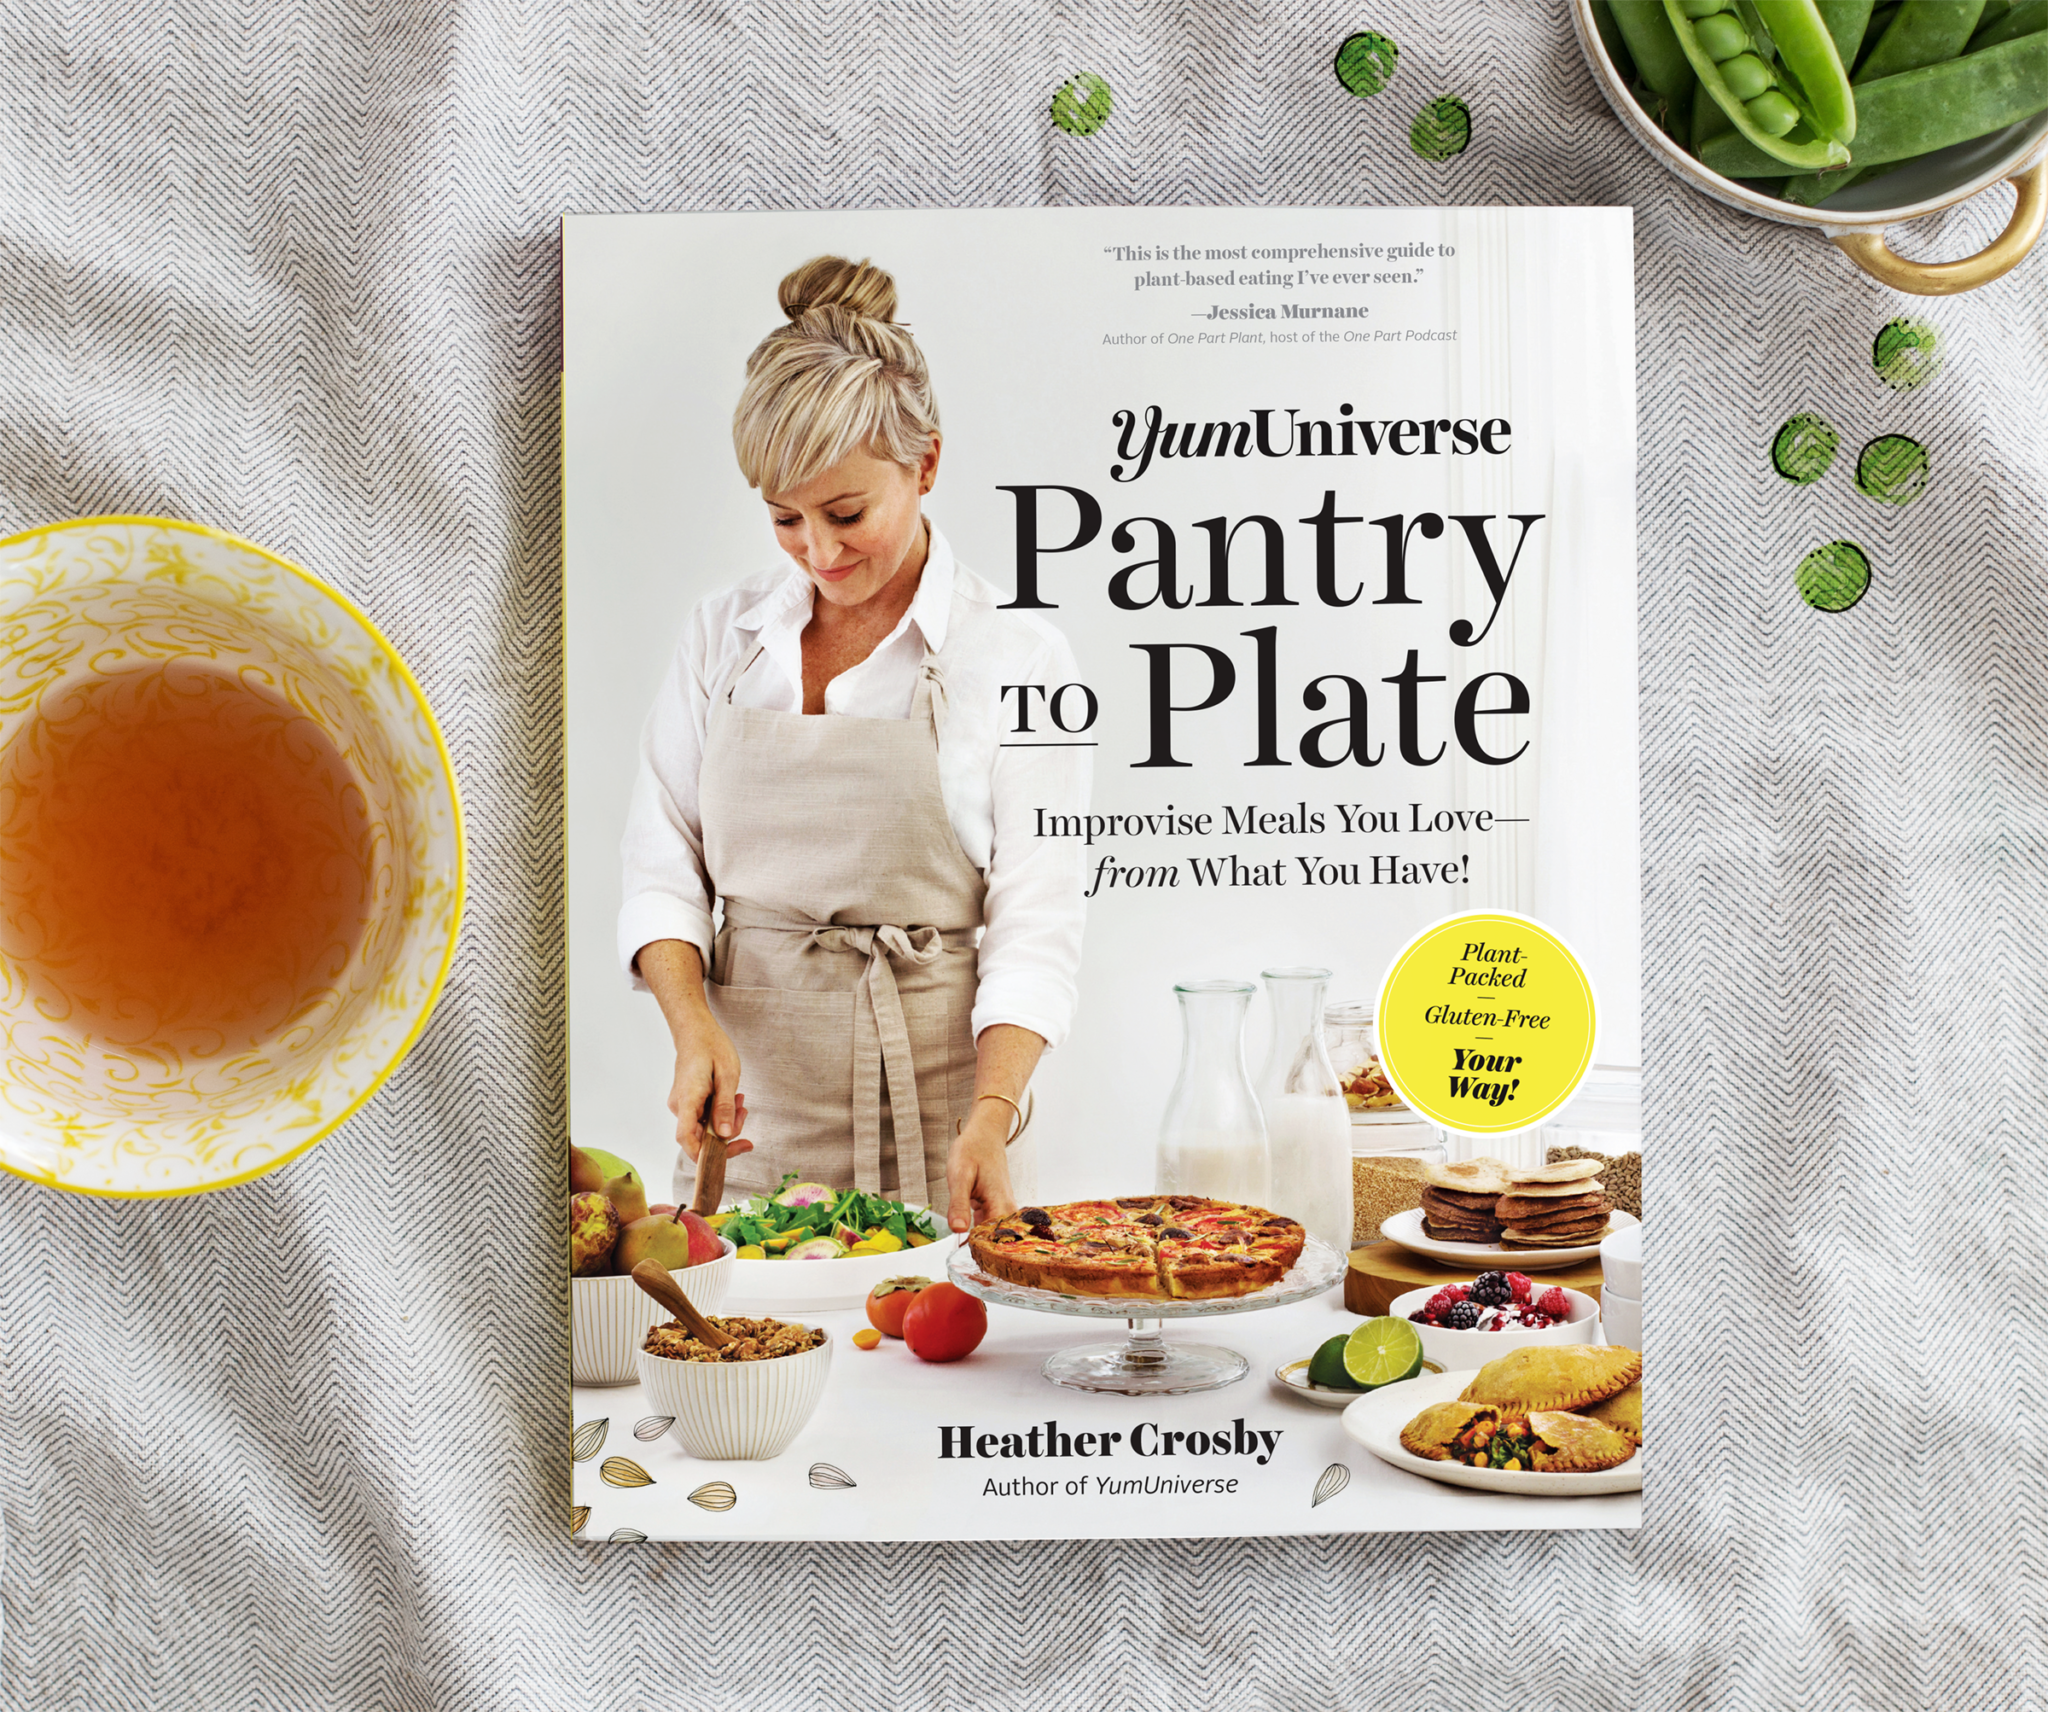 YumUniverse Pantry to Plate